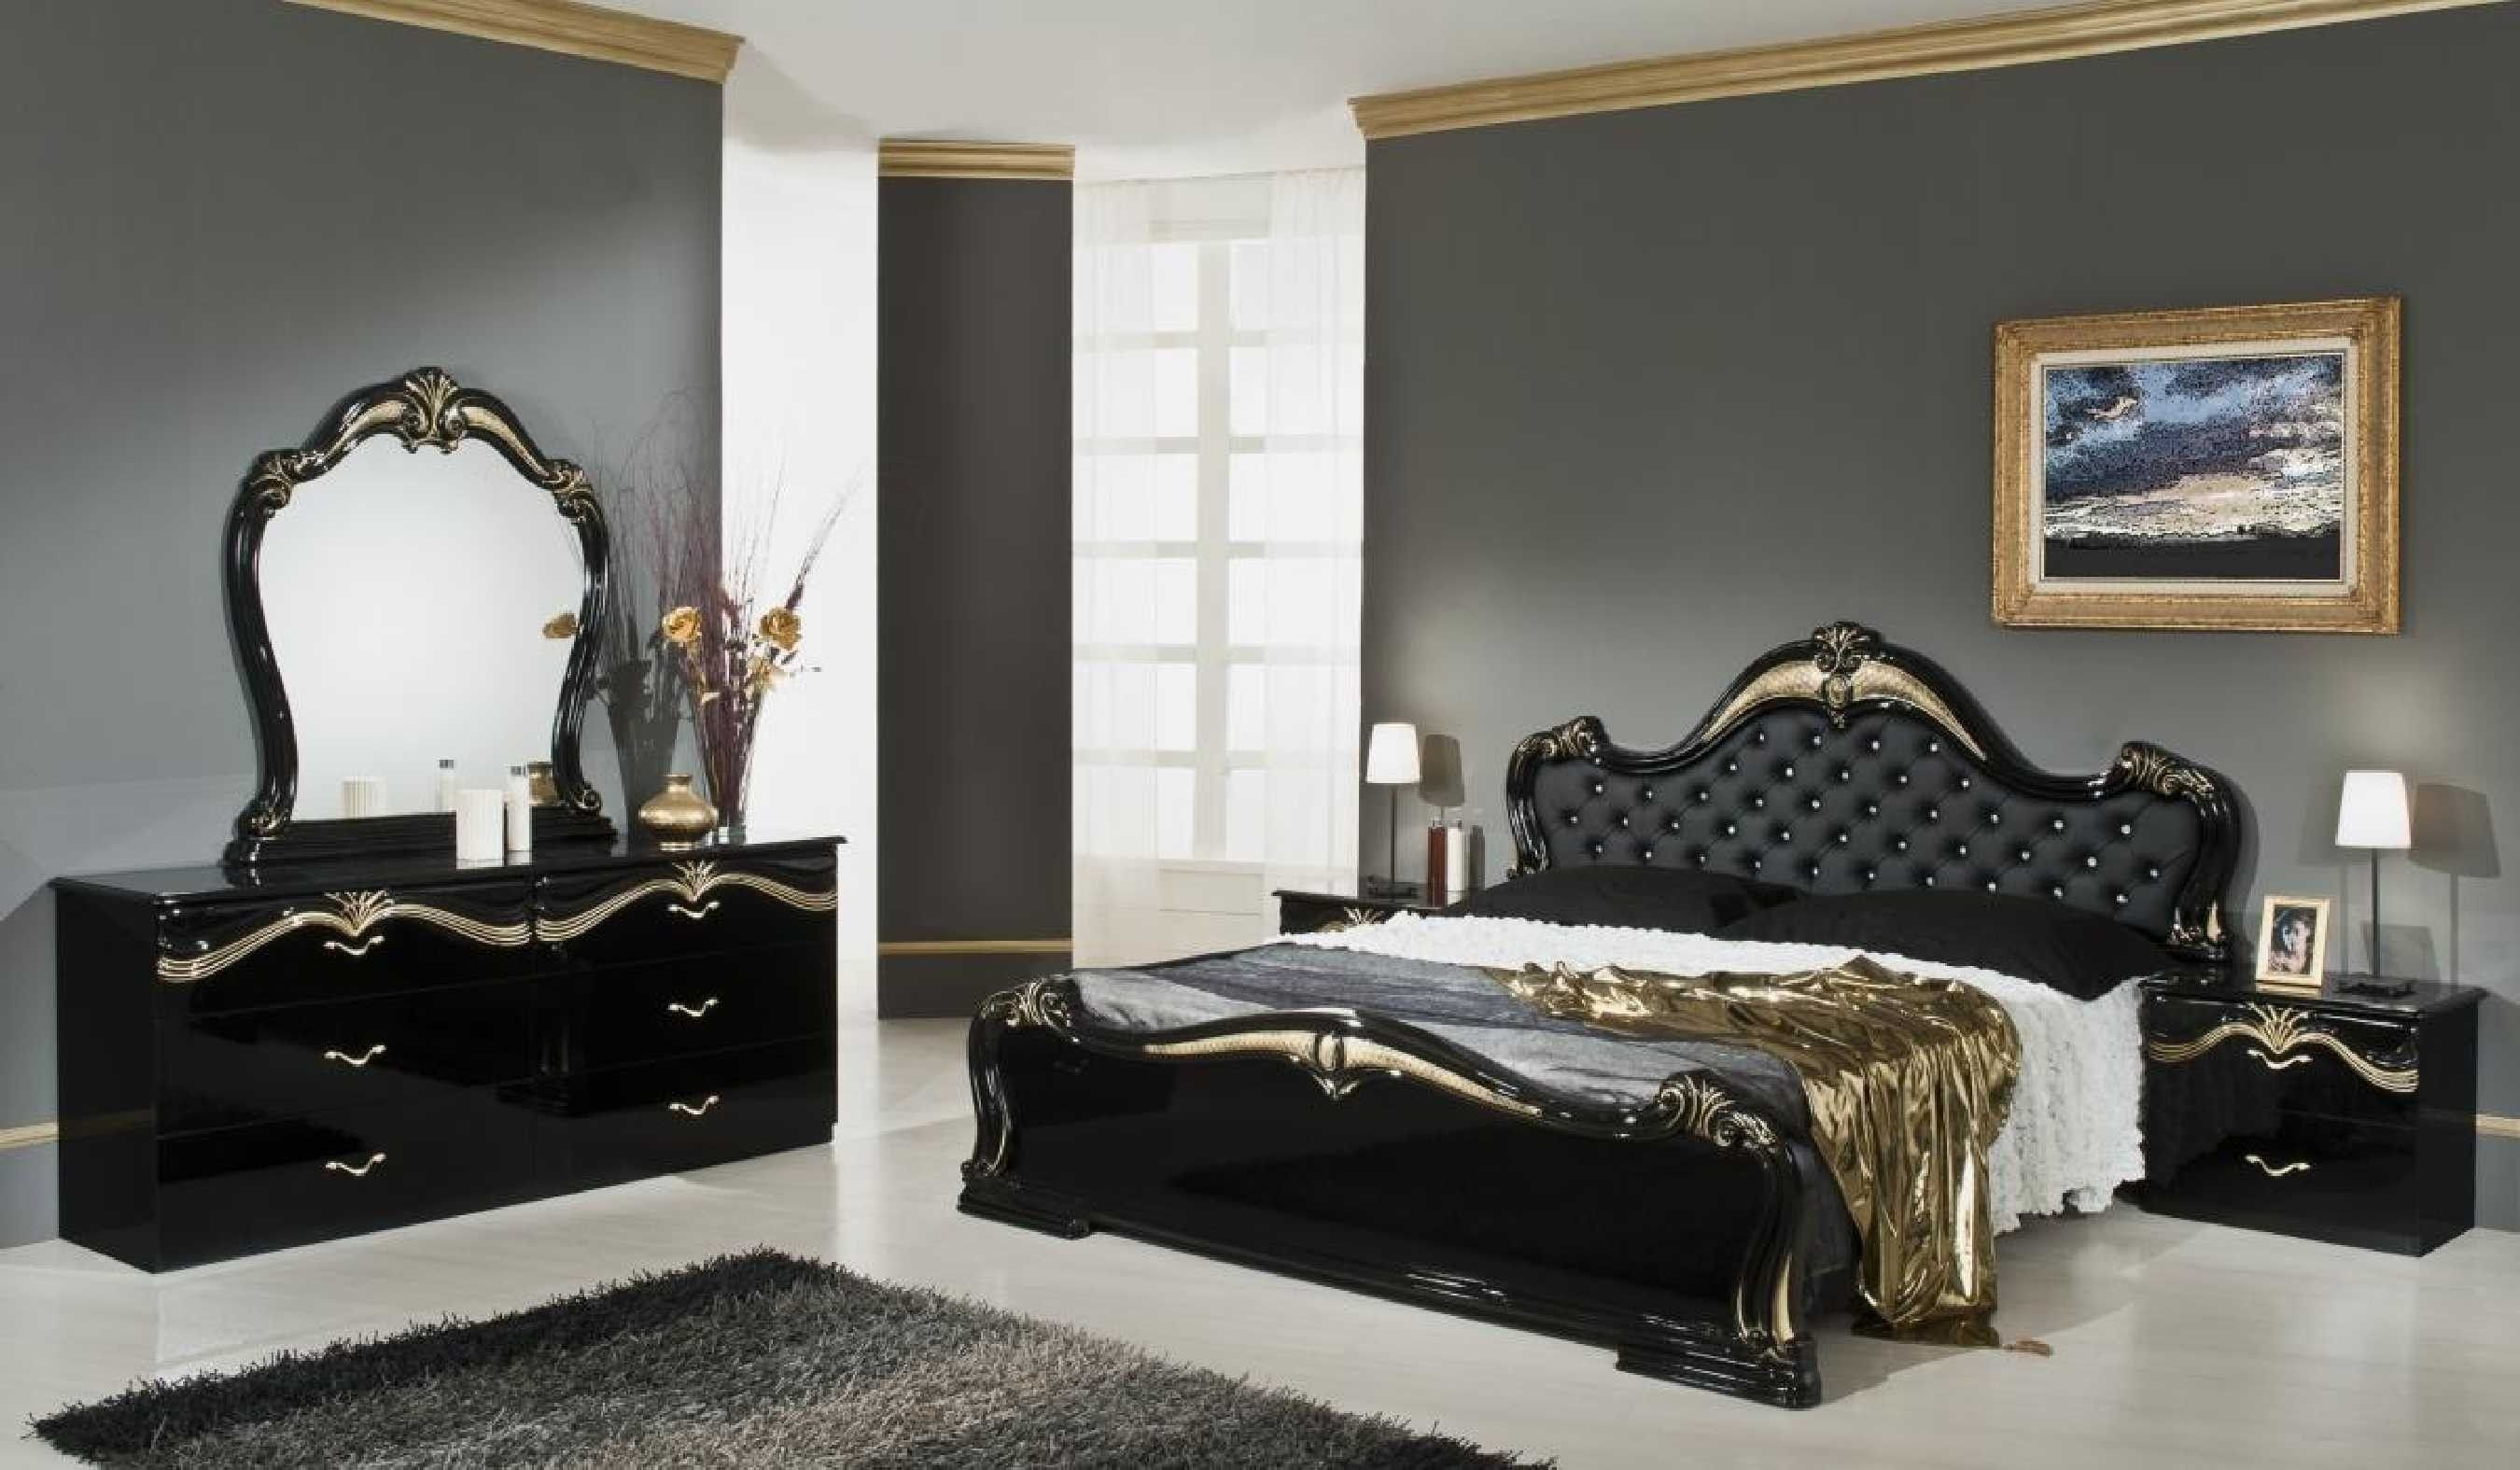 More Loving Bedroom Sets For Under 500 Trend ...